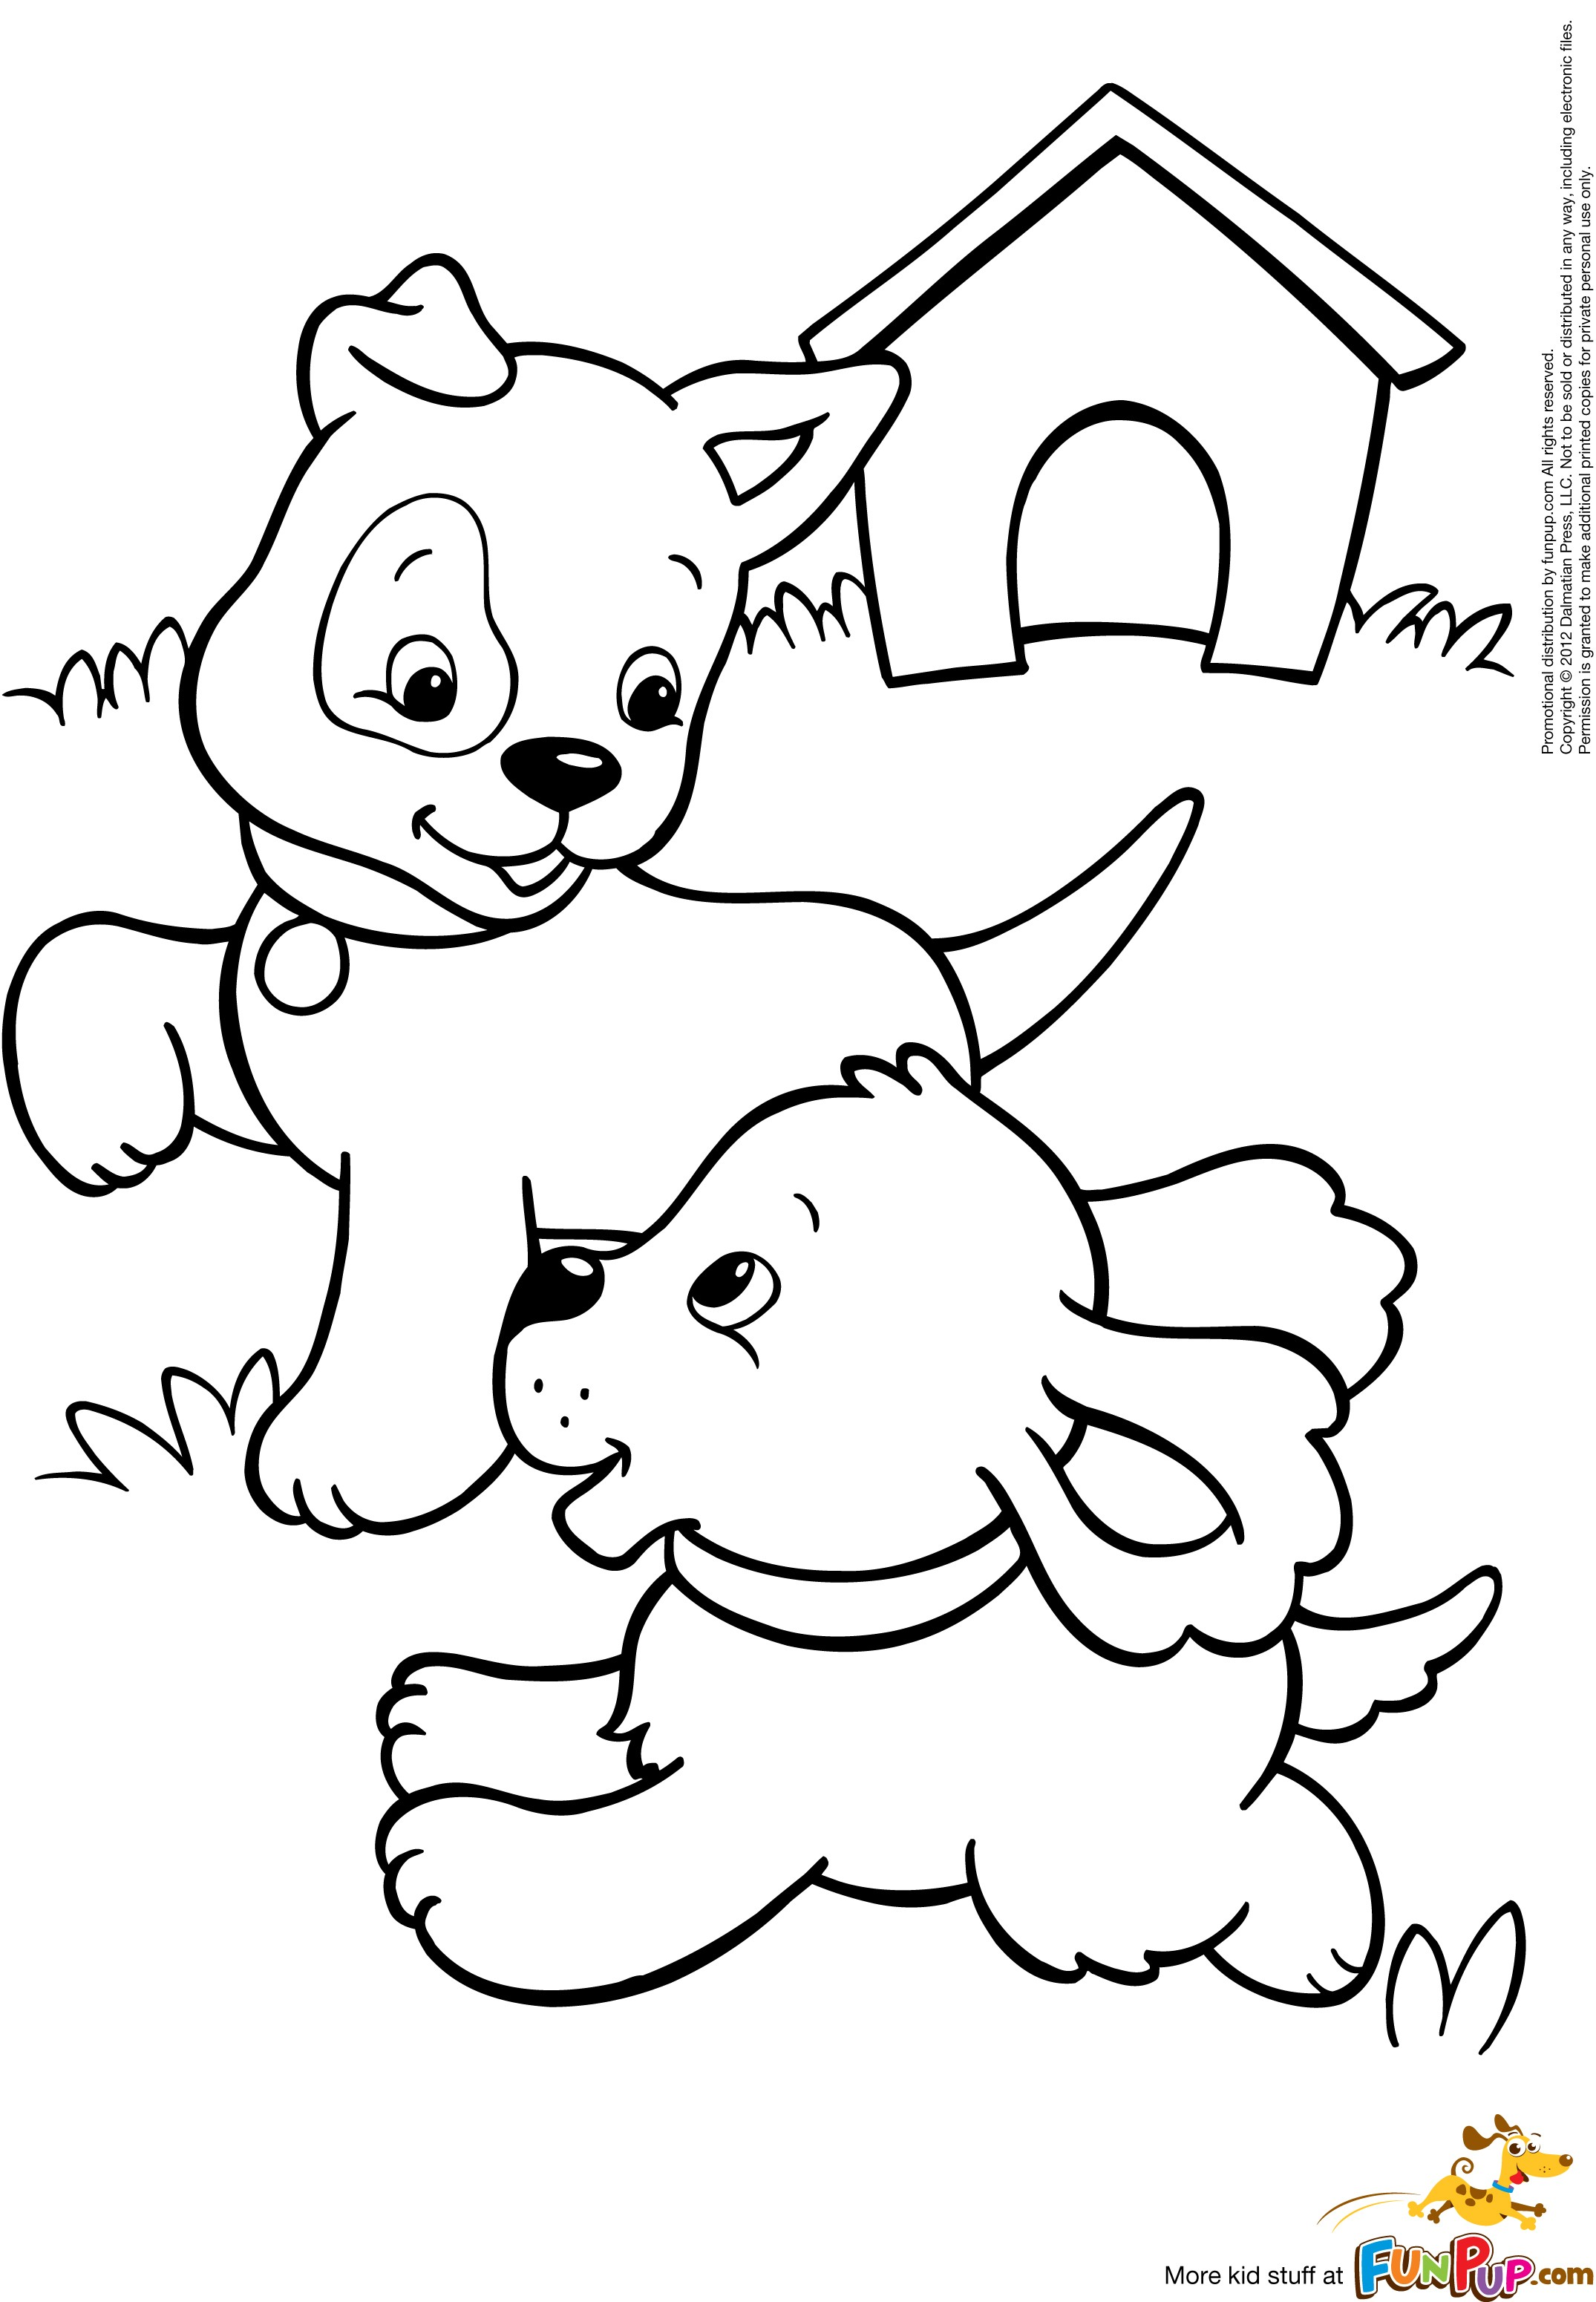 print a dog cute dog coloring pages to download and print for free dog a print